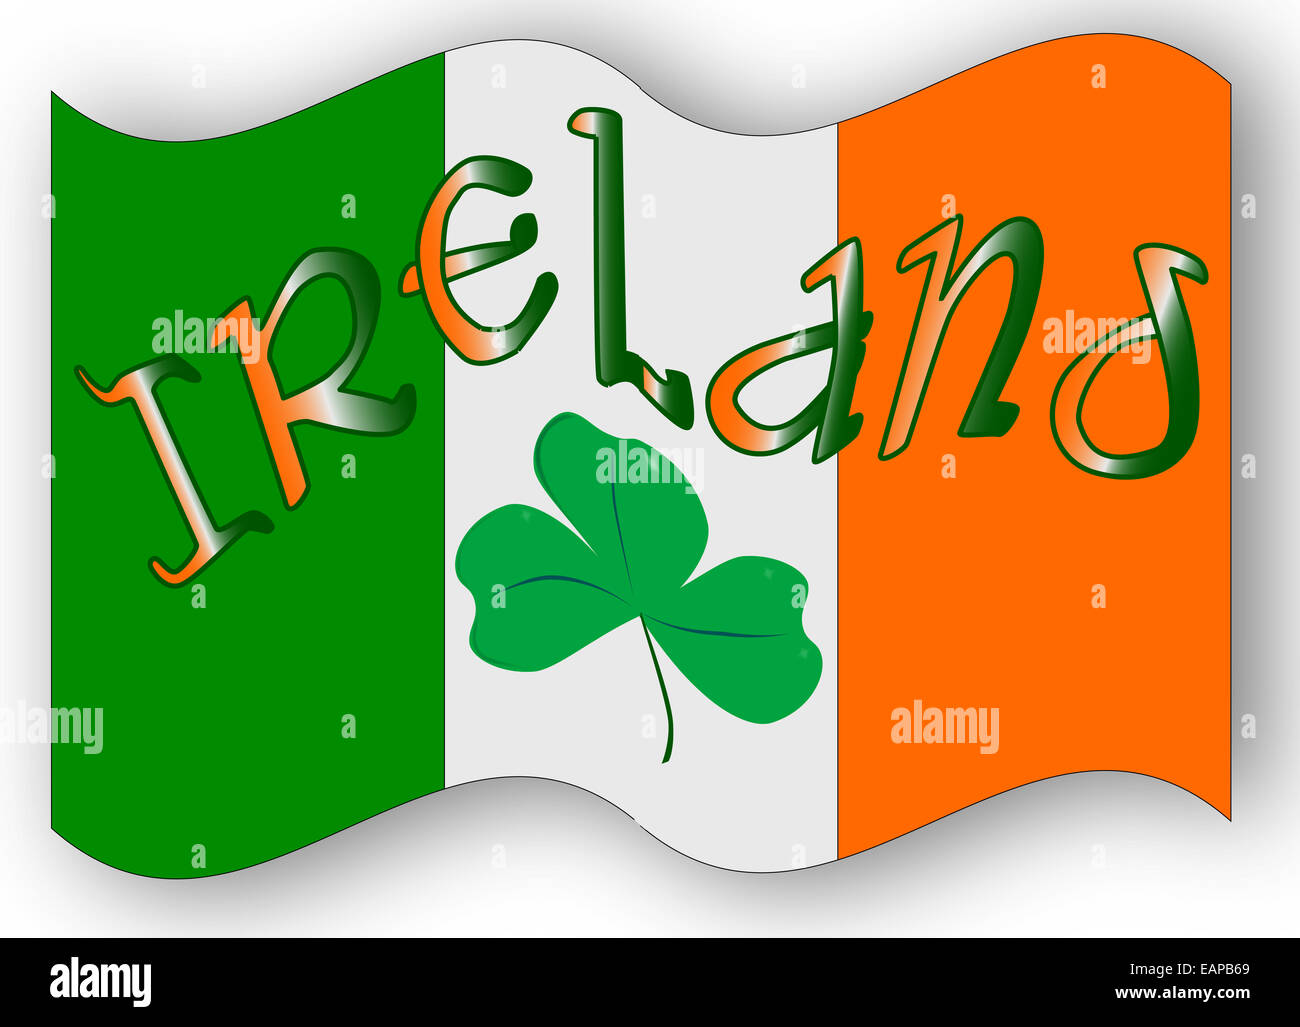 Patrick symbols and meanings st patrick symbols and meanings biocorpaavc